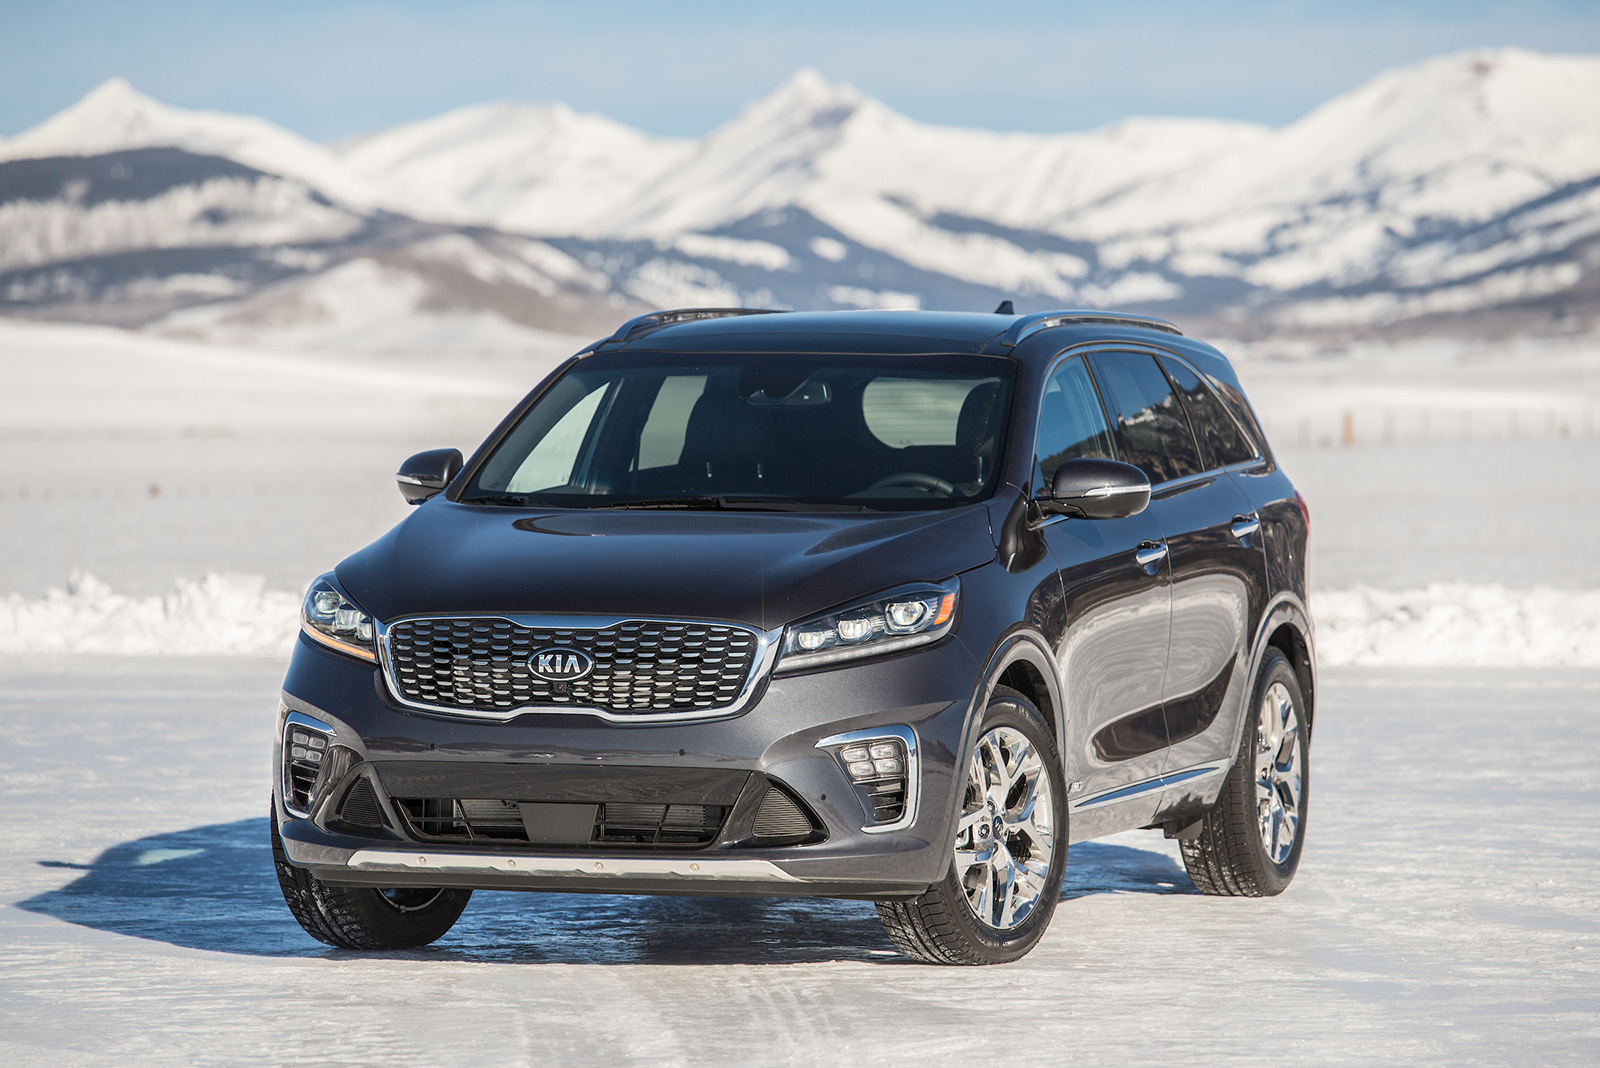 Toyota Of Pullman >> Updated 2019 Kia Sorento Gets a $90 Price Bump » AutoGuide.com News